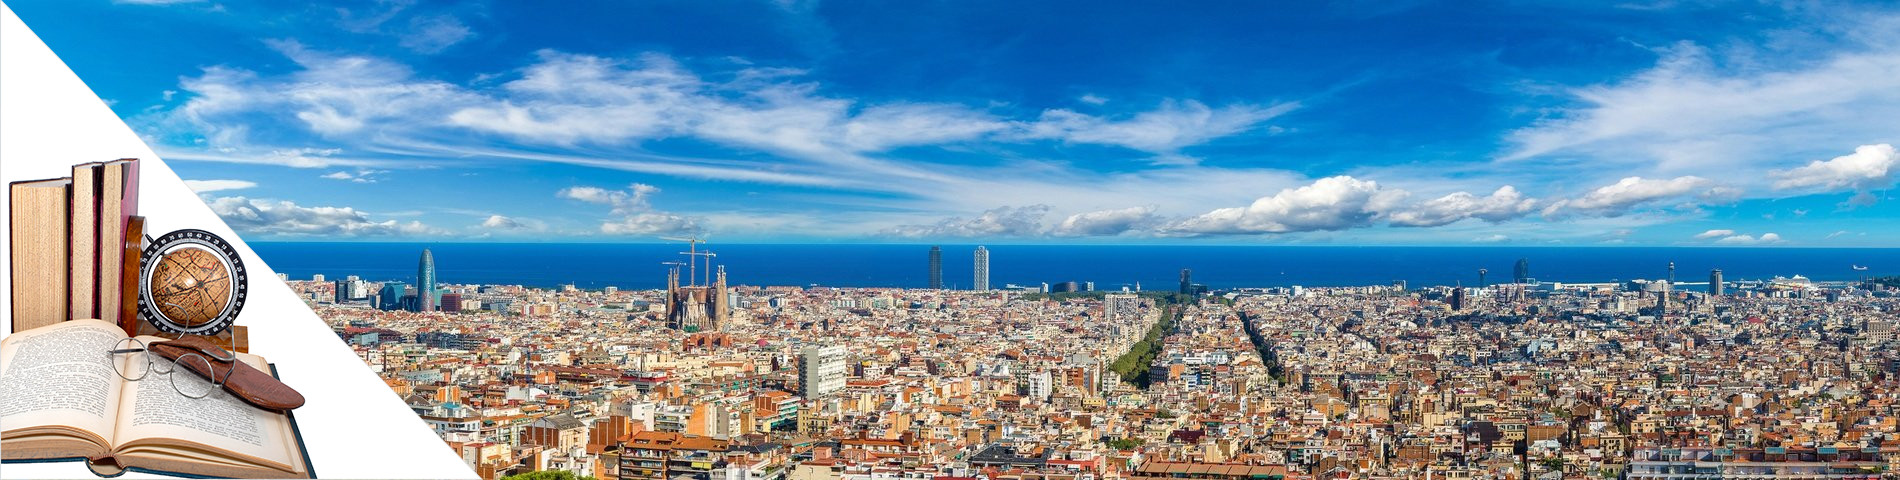 Barcelona - Spanish & Arts & Literature